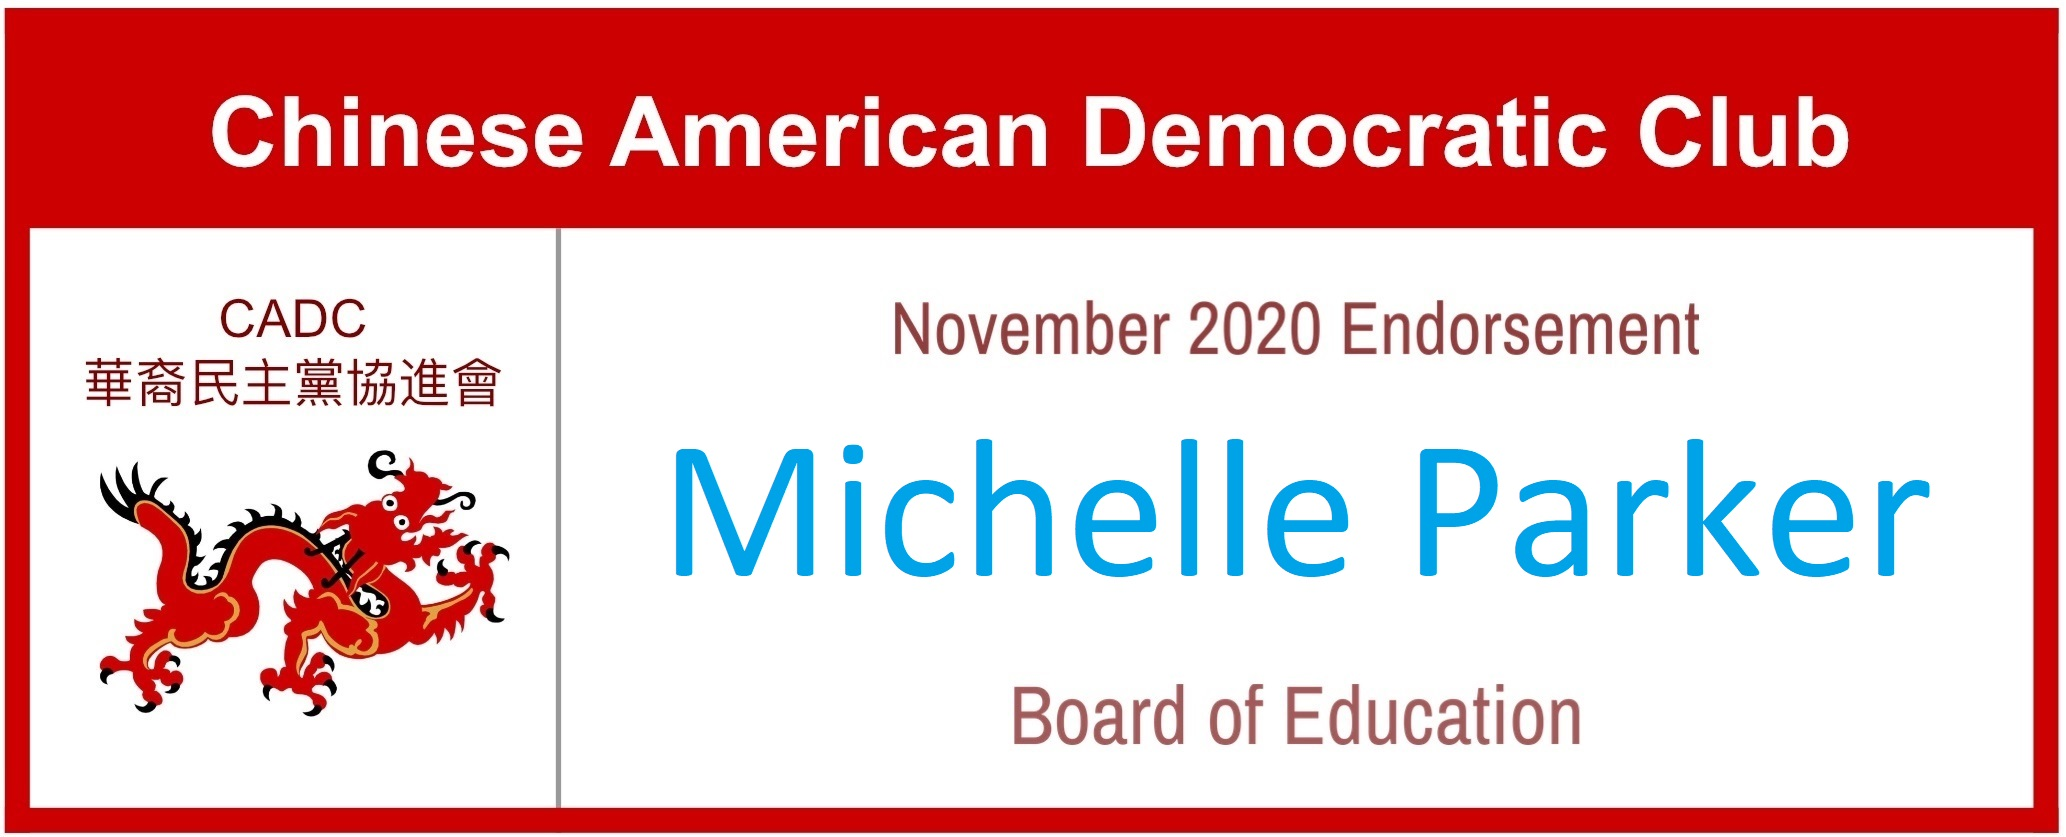 Michelle Parker for Board of Education - CADC Endorsement November 2020.jpg